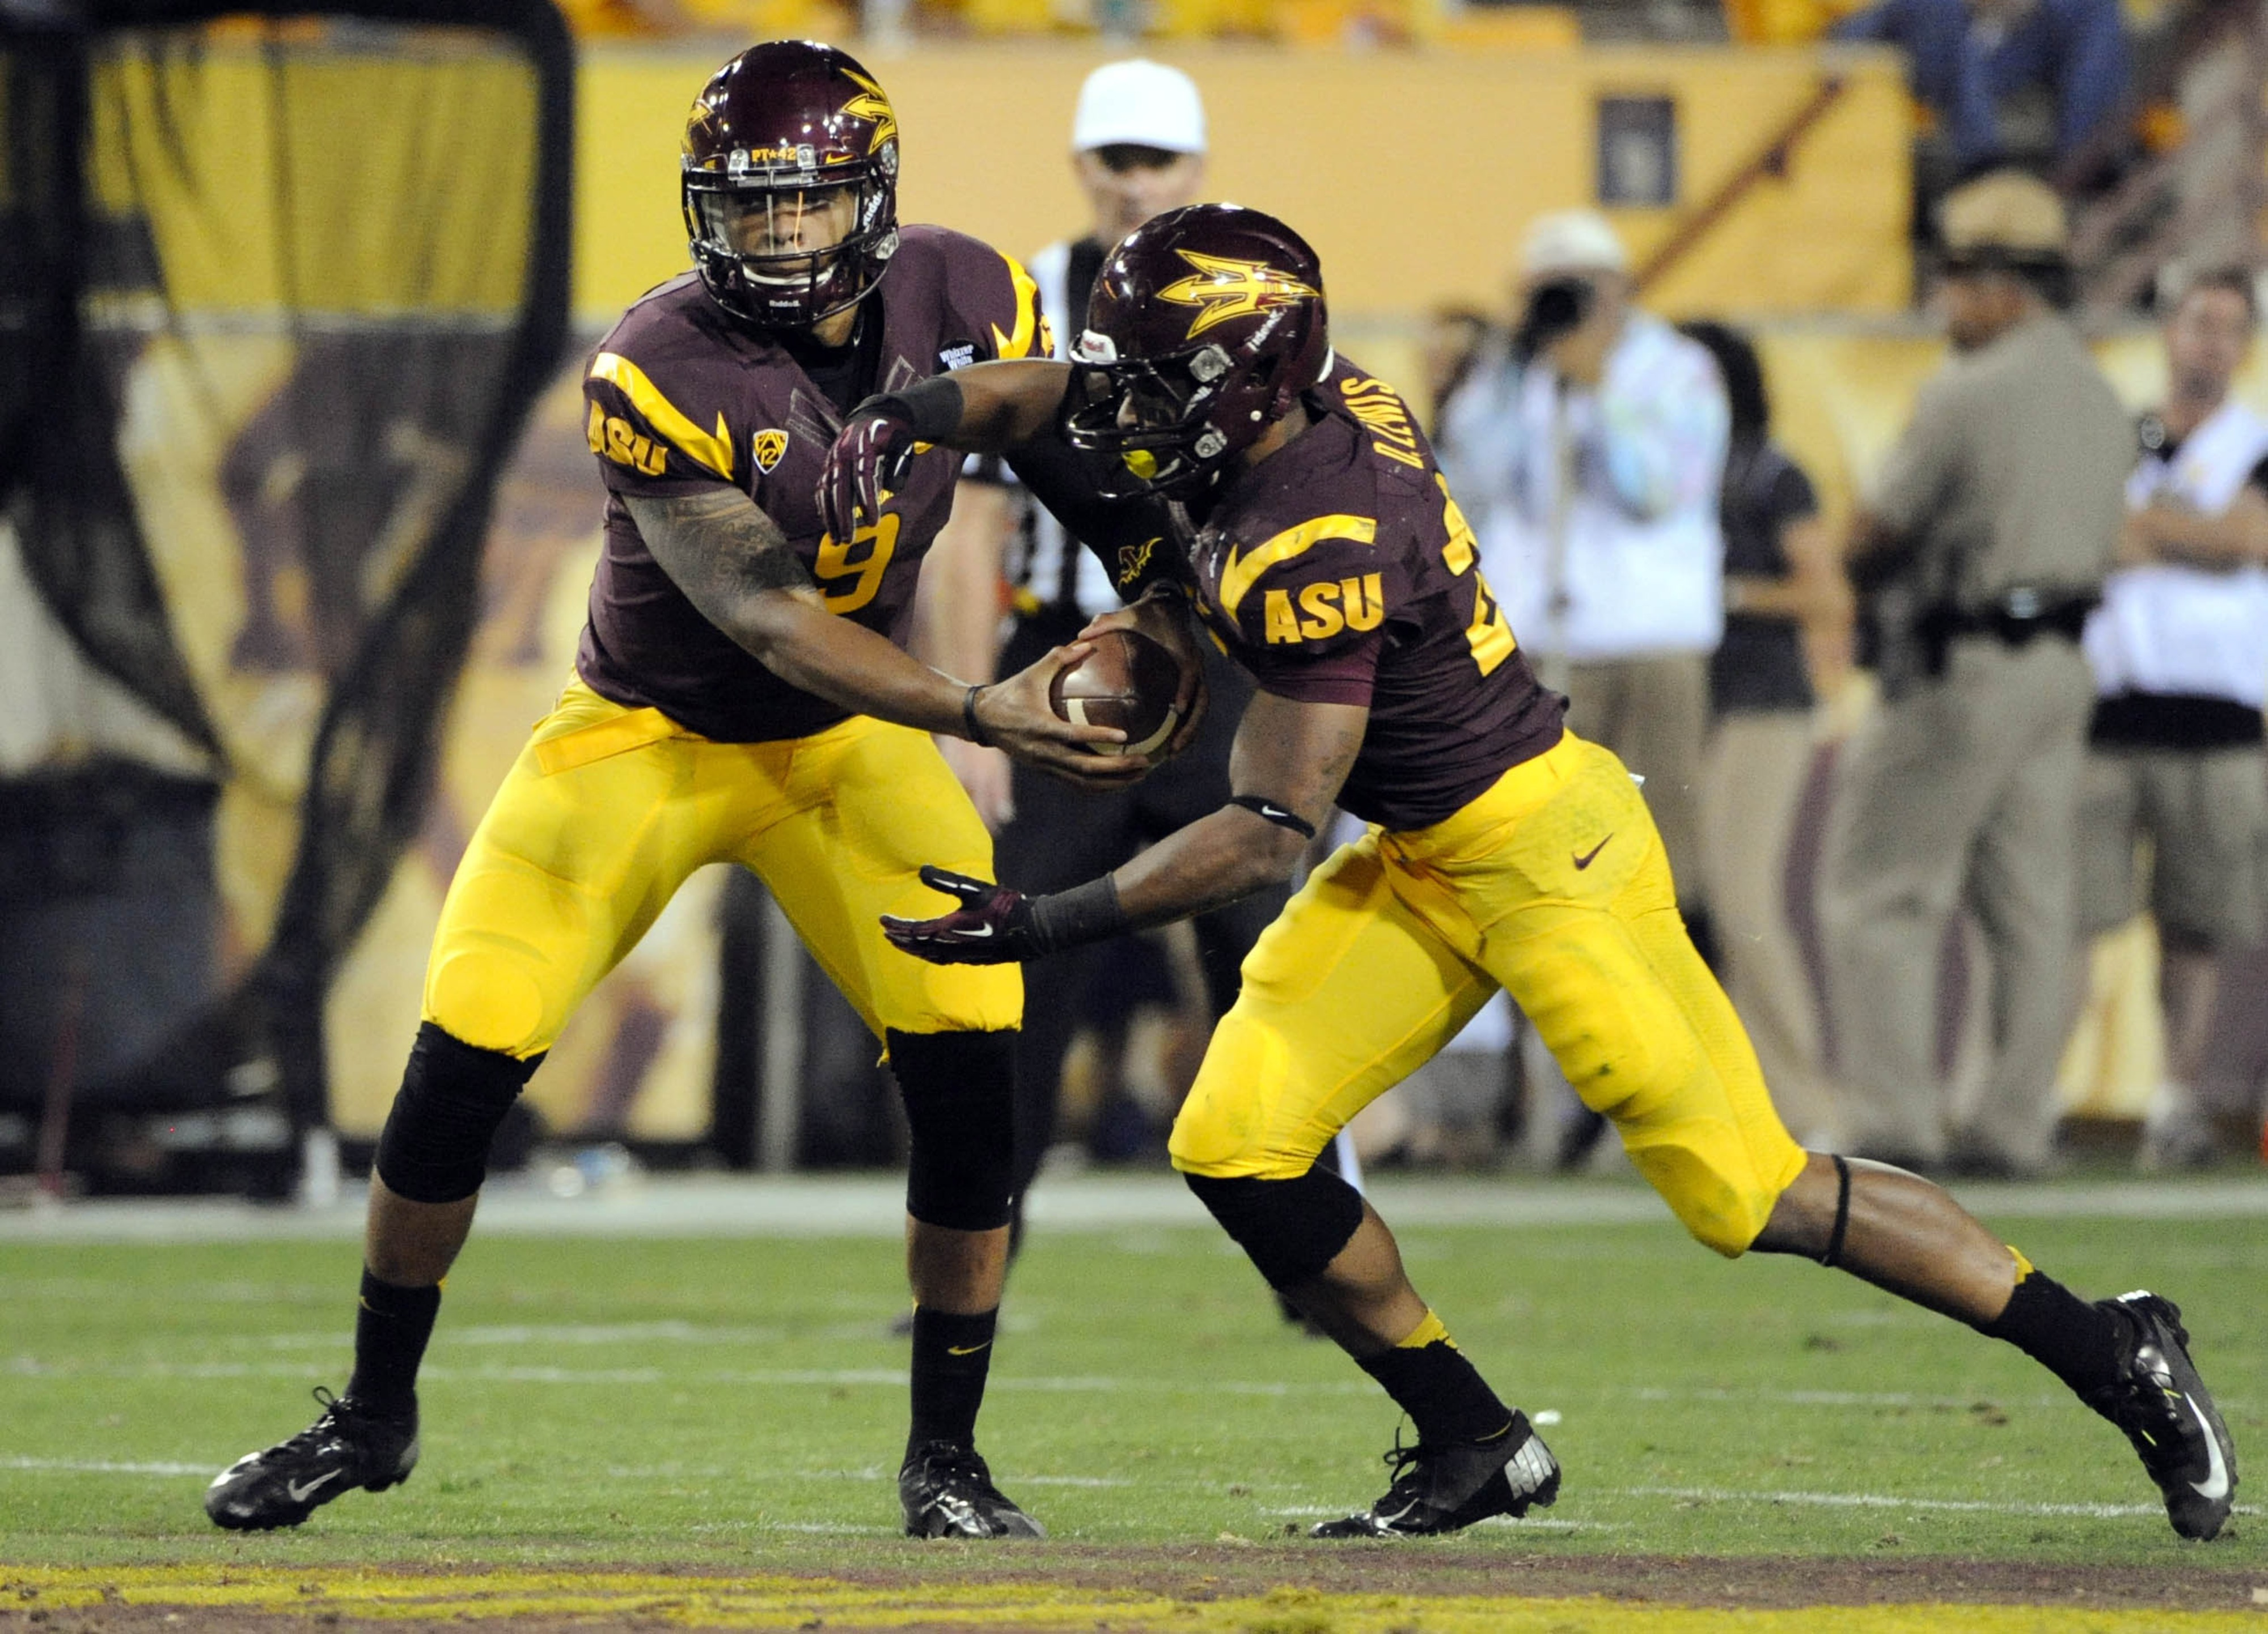 Will the Sun Devils be able to overcome the Husky's Bishop Sankey on Saturday?